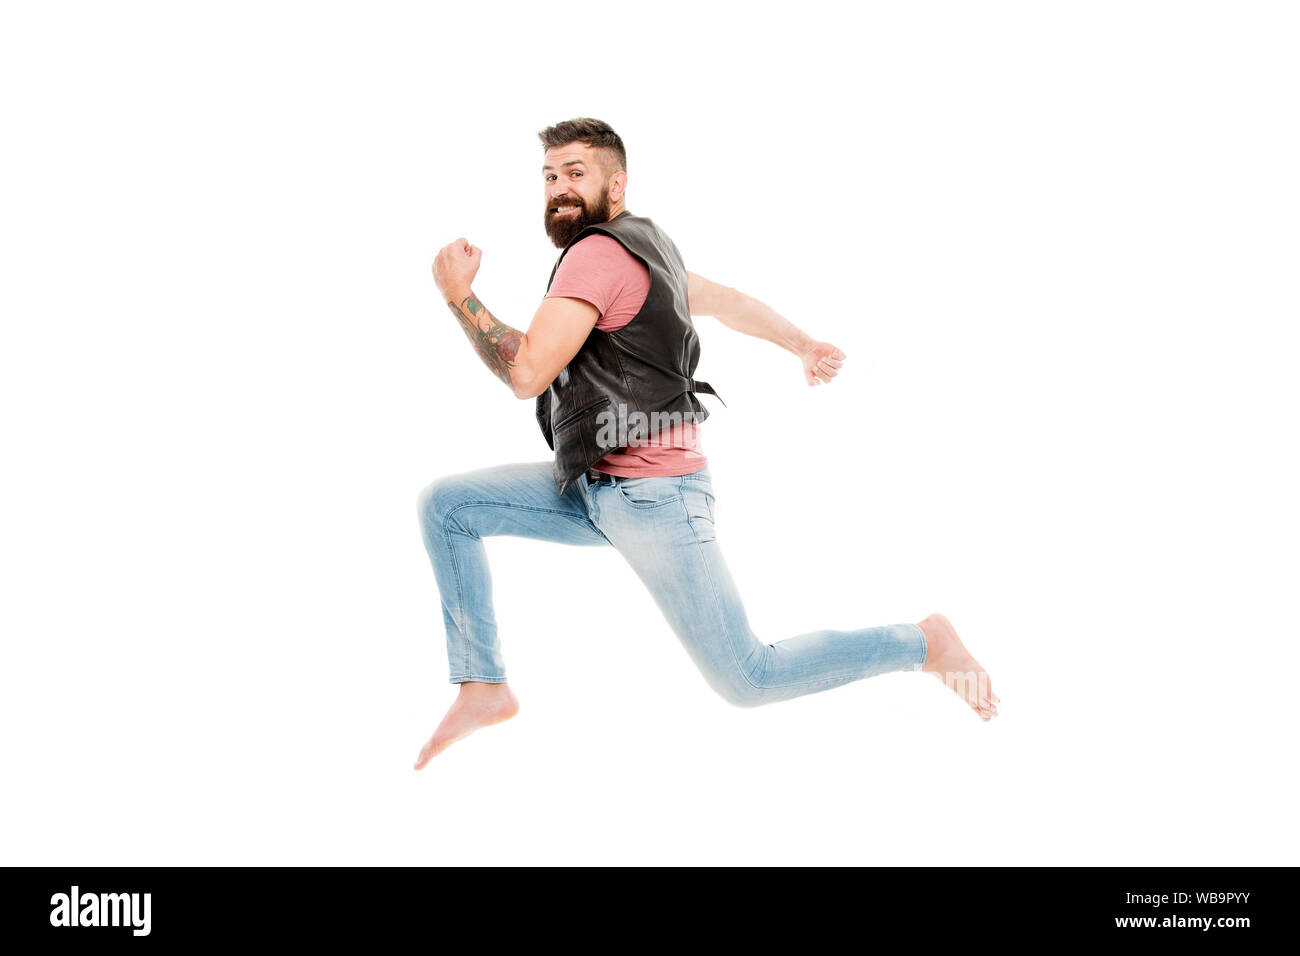 Last chance. Following his dream. Barefoot guy hurries to beach. Run away. Hurry up. Guy happy cheerful face having fun run jumping. Life in motion. Man bearded guy run away. Always in motion. Stock Photo